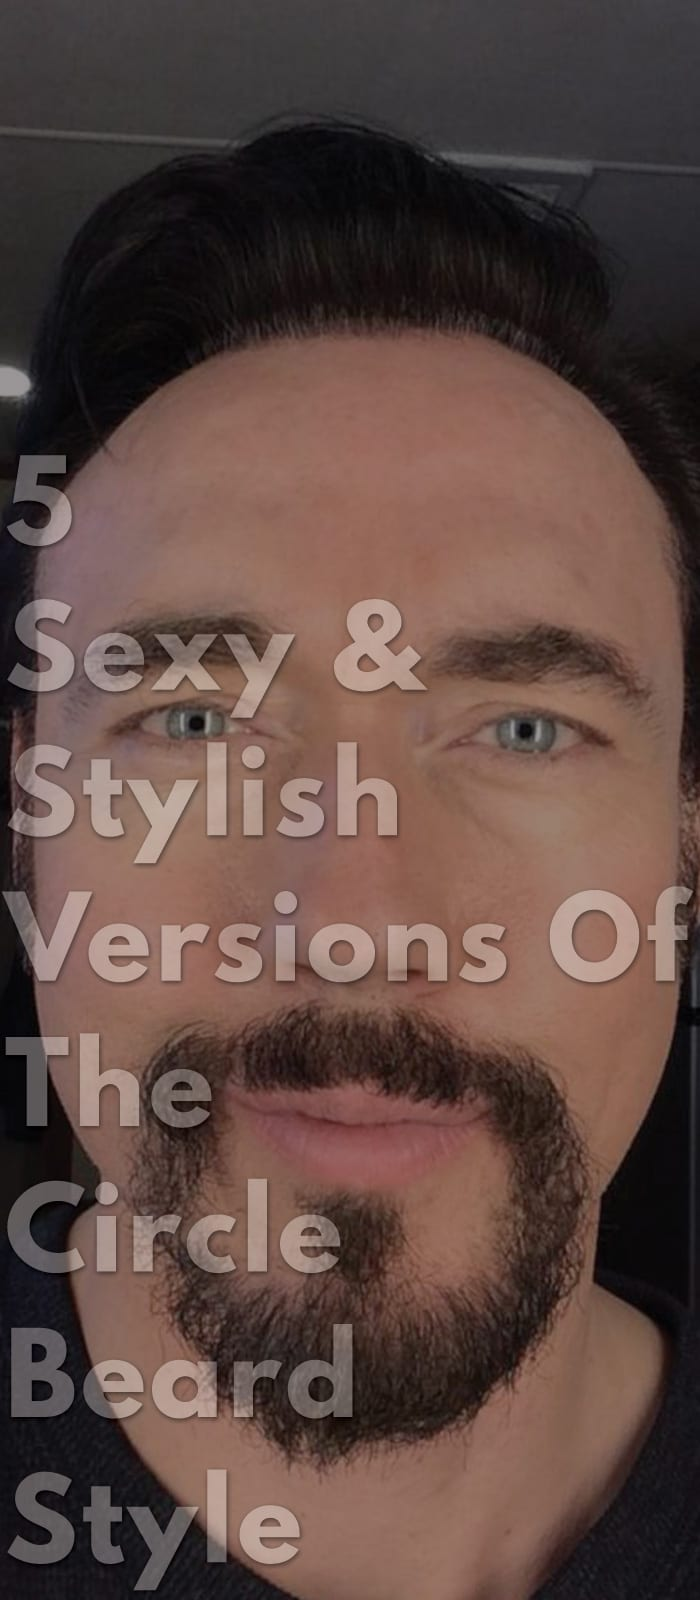 5-Sexy-&-Stylish-Versions-Of-The-Circle-Beard-Style.